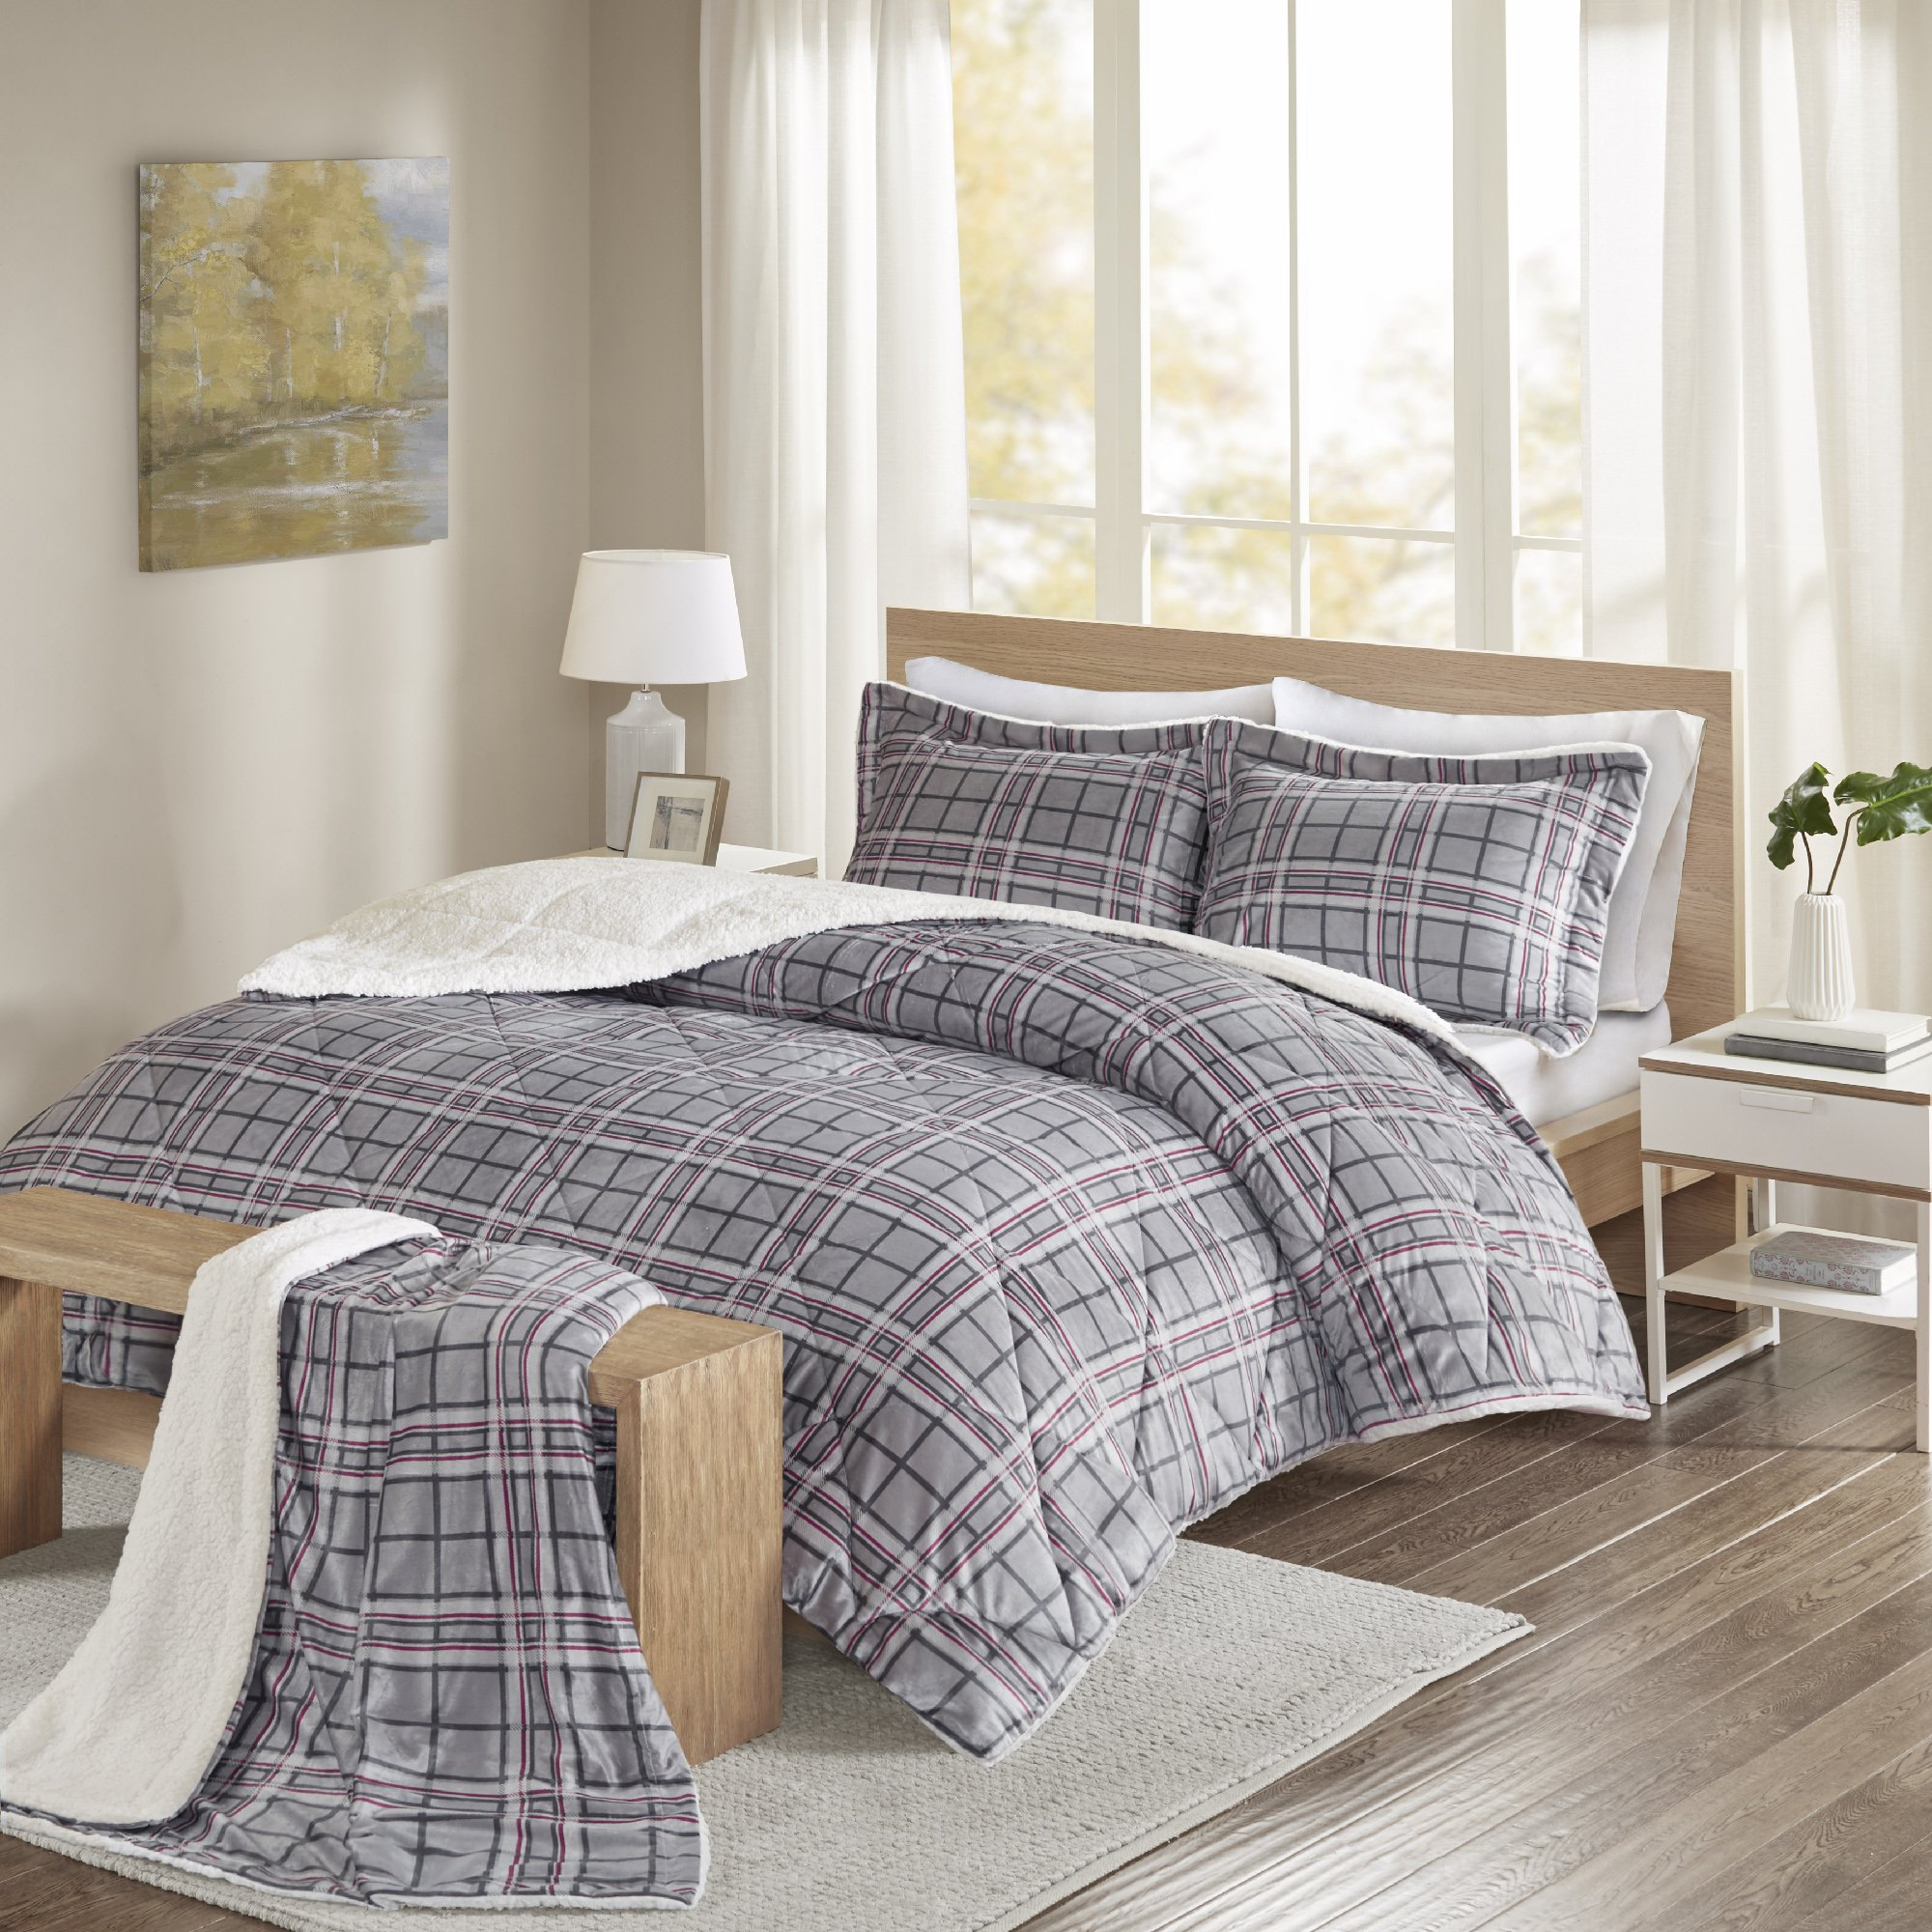 Comfort Spaces - Aaron Sherpa Comforter Set + Throw Combo - 4 Piece - Checker Plaid Pattern - Grey, Red - Full/Queen Size - Ultra Softy, Fluffy, Warm - includes 1 Comforter, 2 Shams, 1 Throw